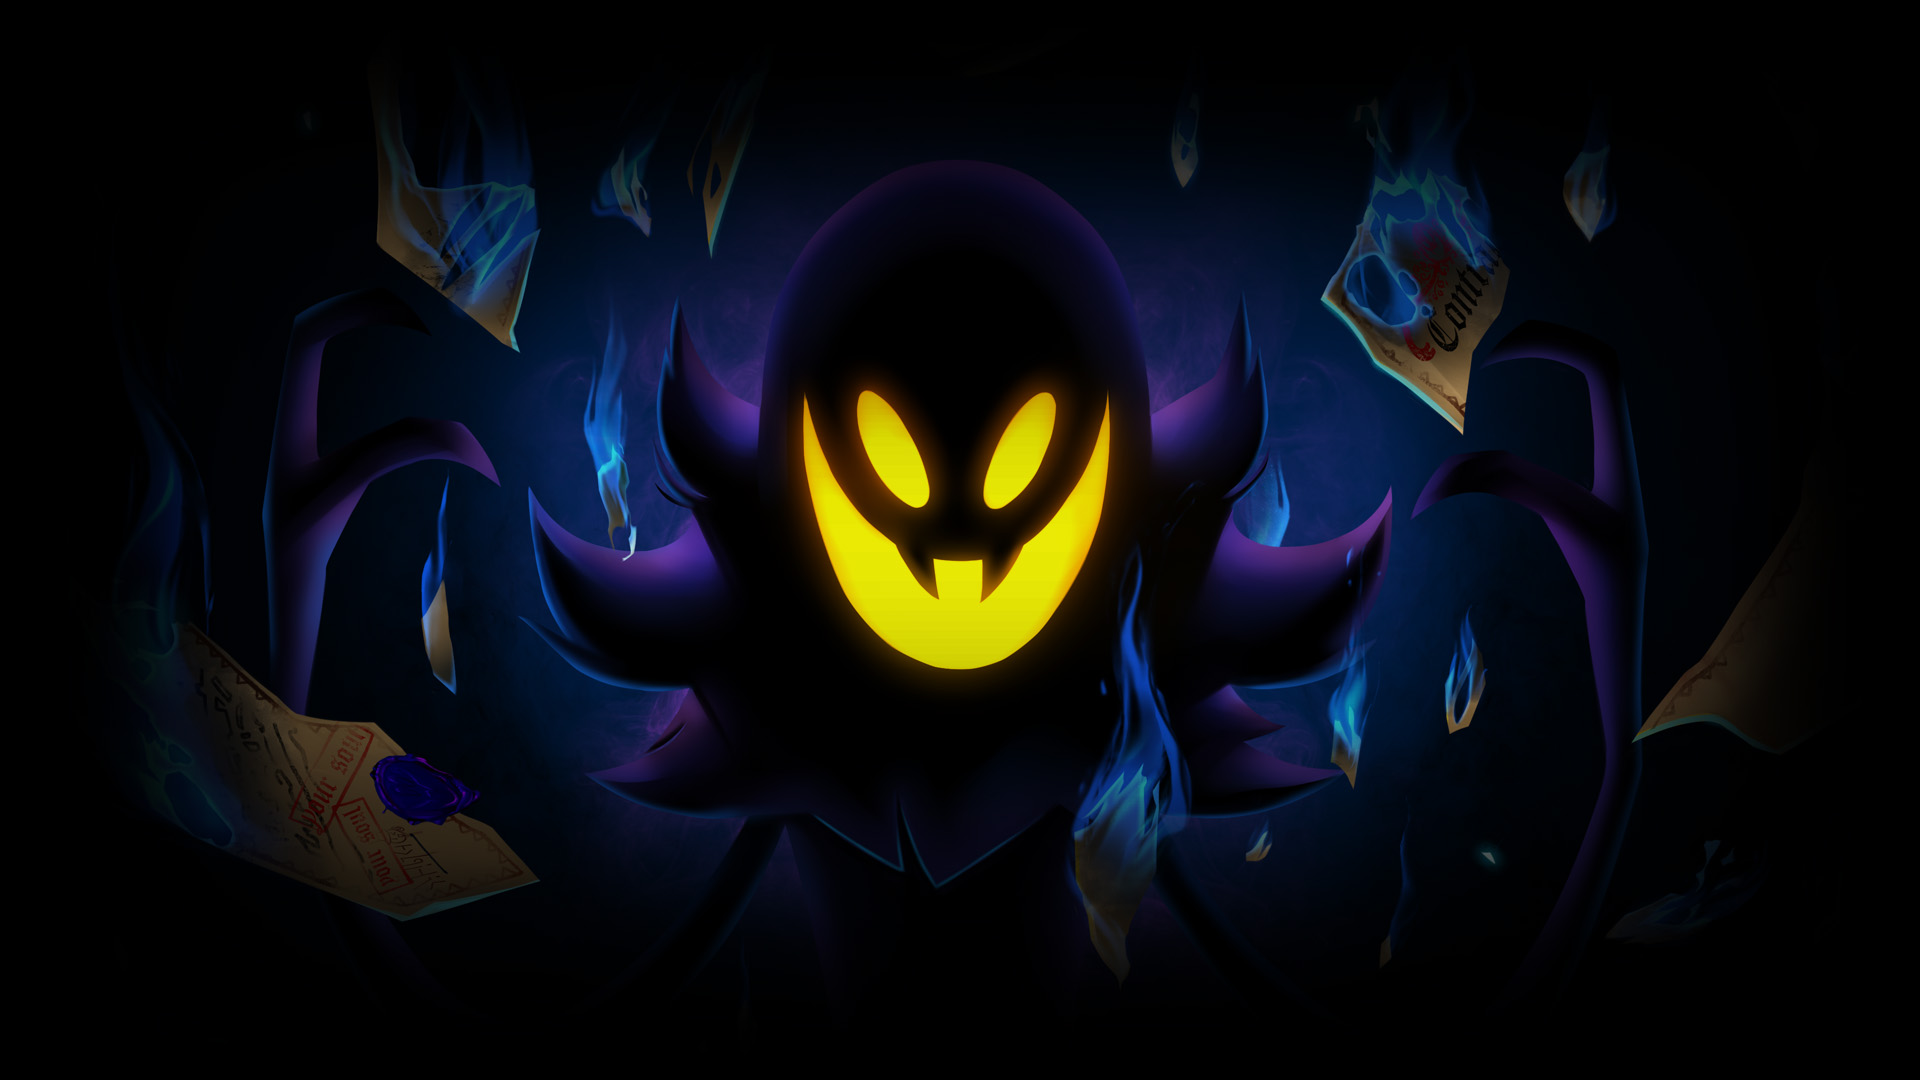 Steam Community Market Listings For 253230 A Hat In Time The